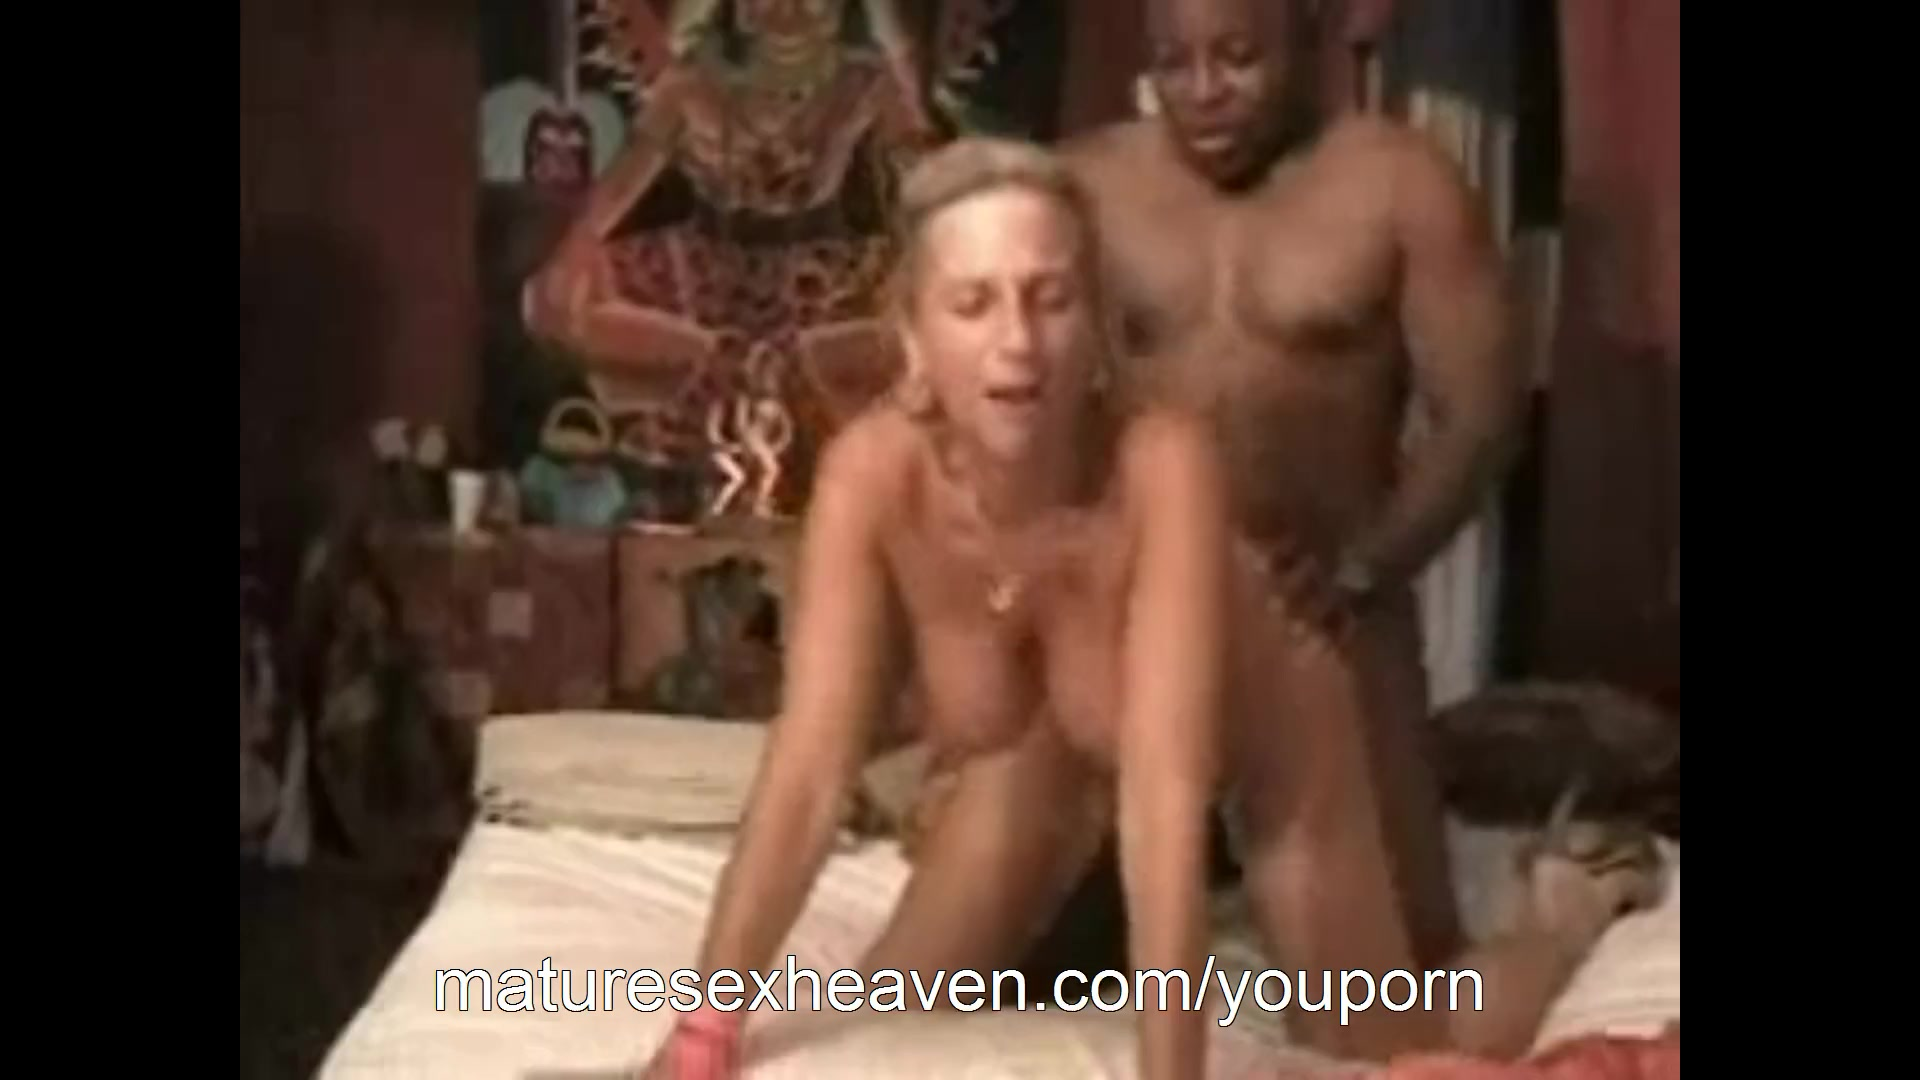 Mandingo milf porn videos on pornmd